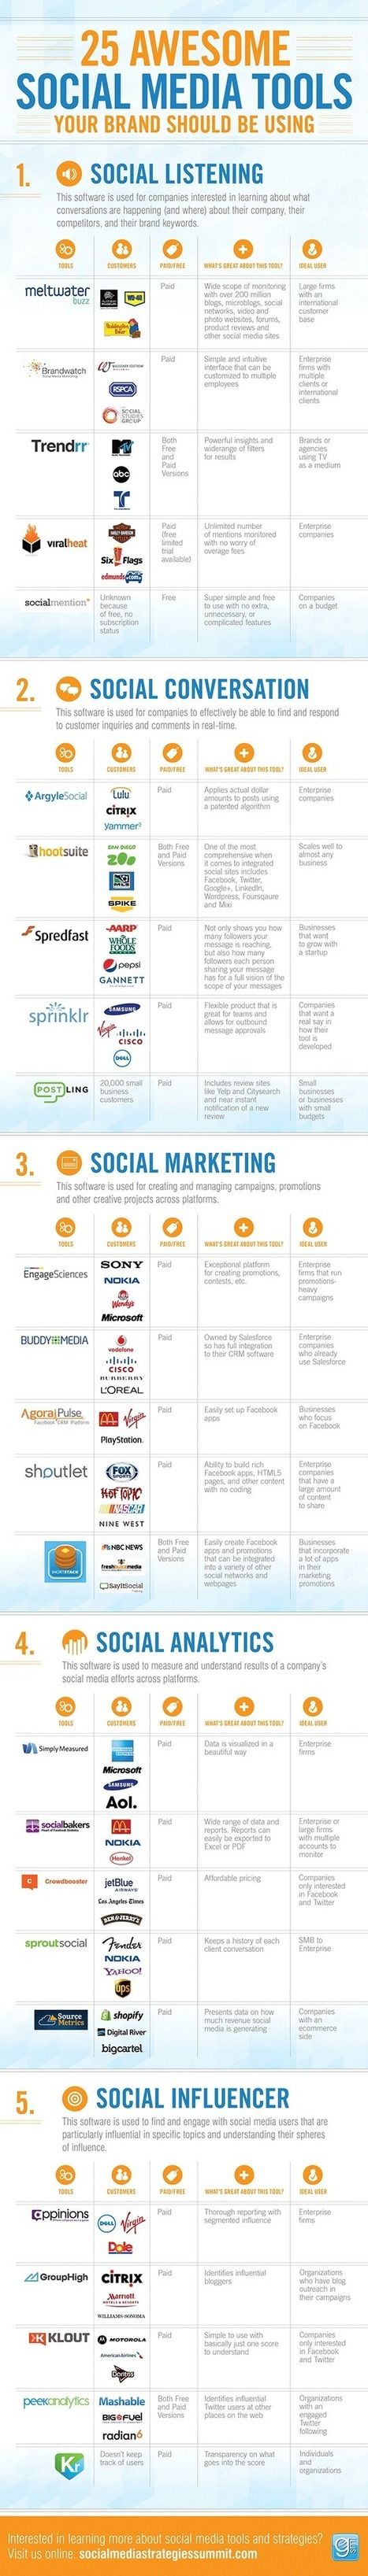 25 Awesome Social Media Tools You Should be Using [Infographic] | marketing | Scoop.it